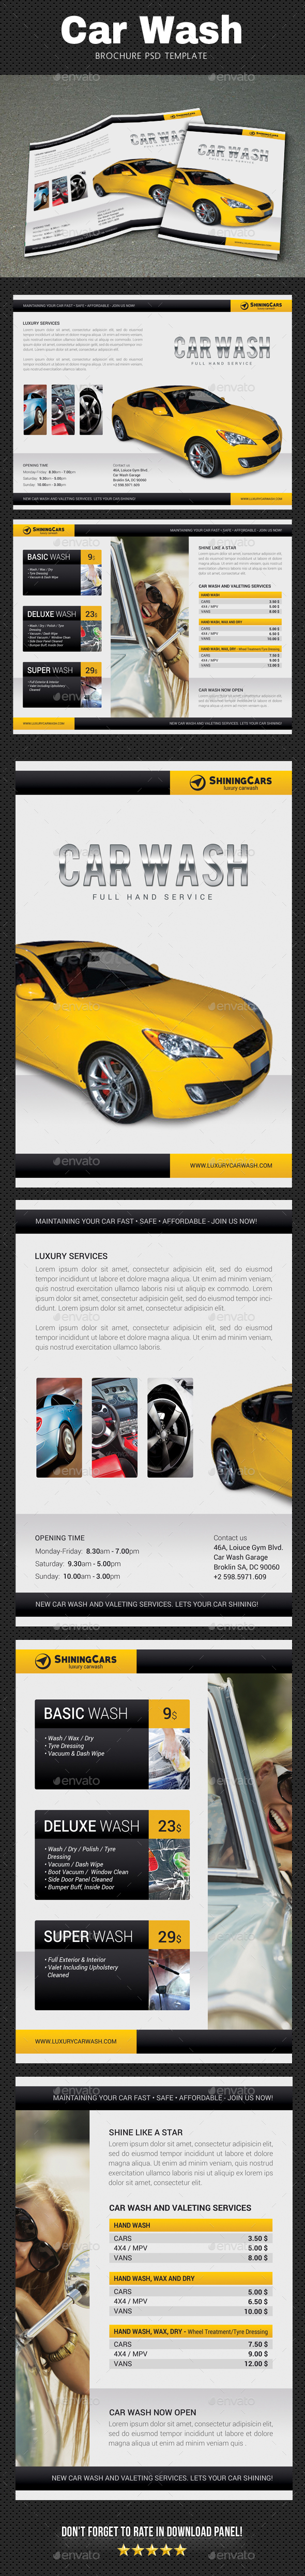 Car Wash Brochure 2 - Catalogs Brochures